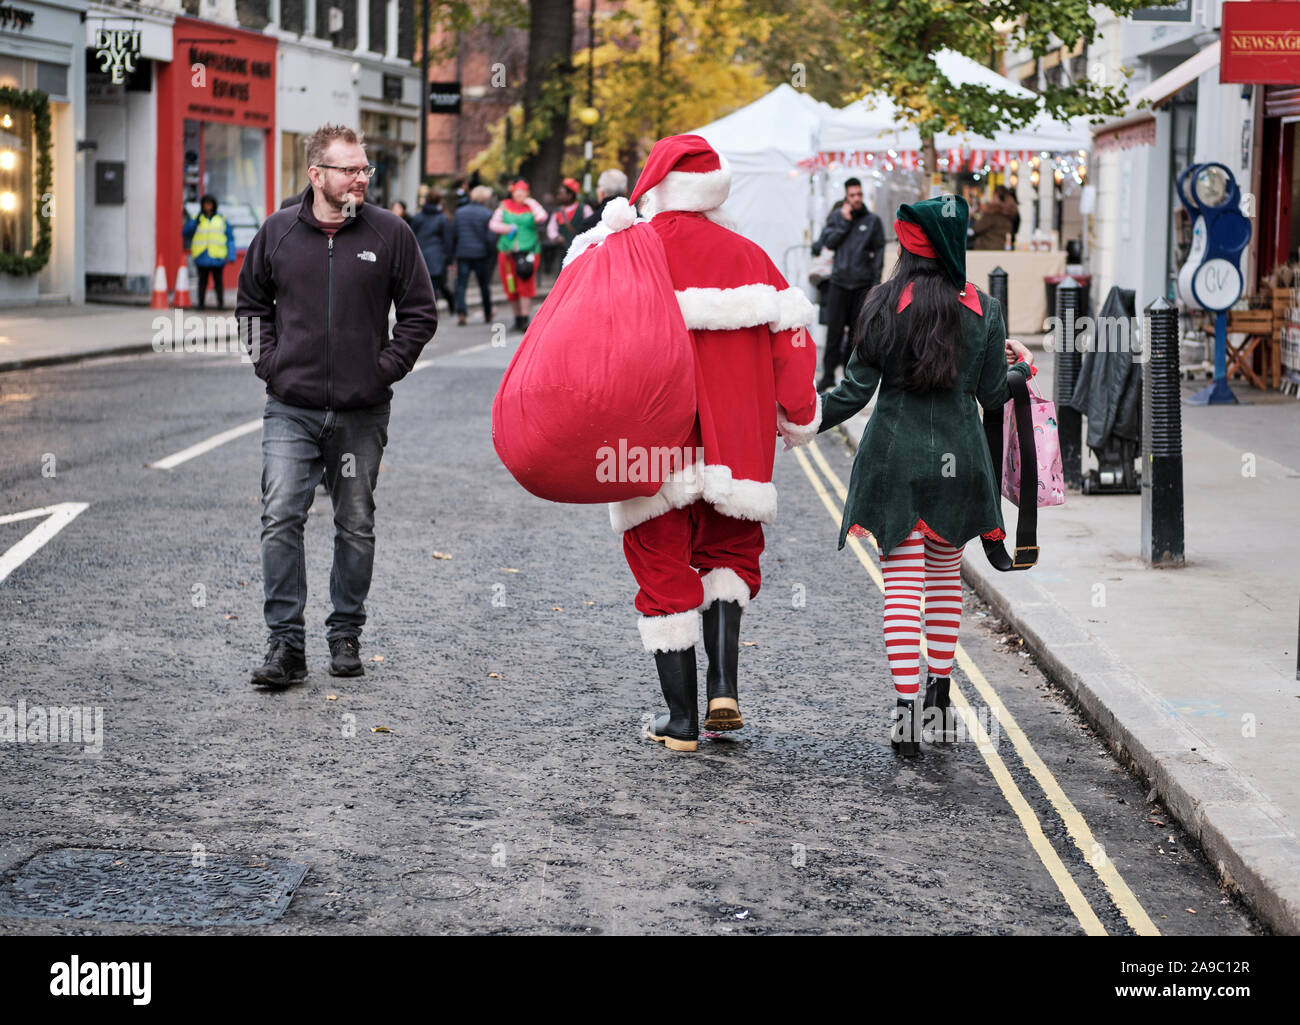 father-christmas-and-a-female-elf-walking-away-hand-in-hand-getting-look-from-passer-by-on-london-street-2A9C12R.jpg